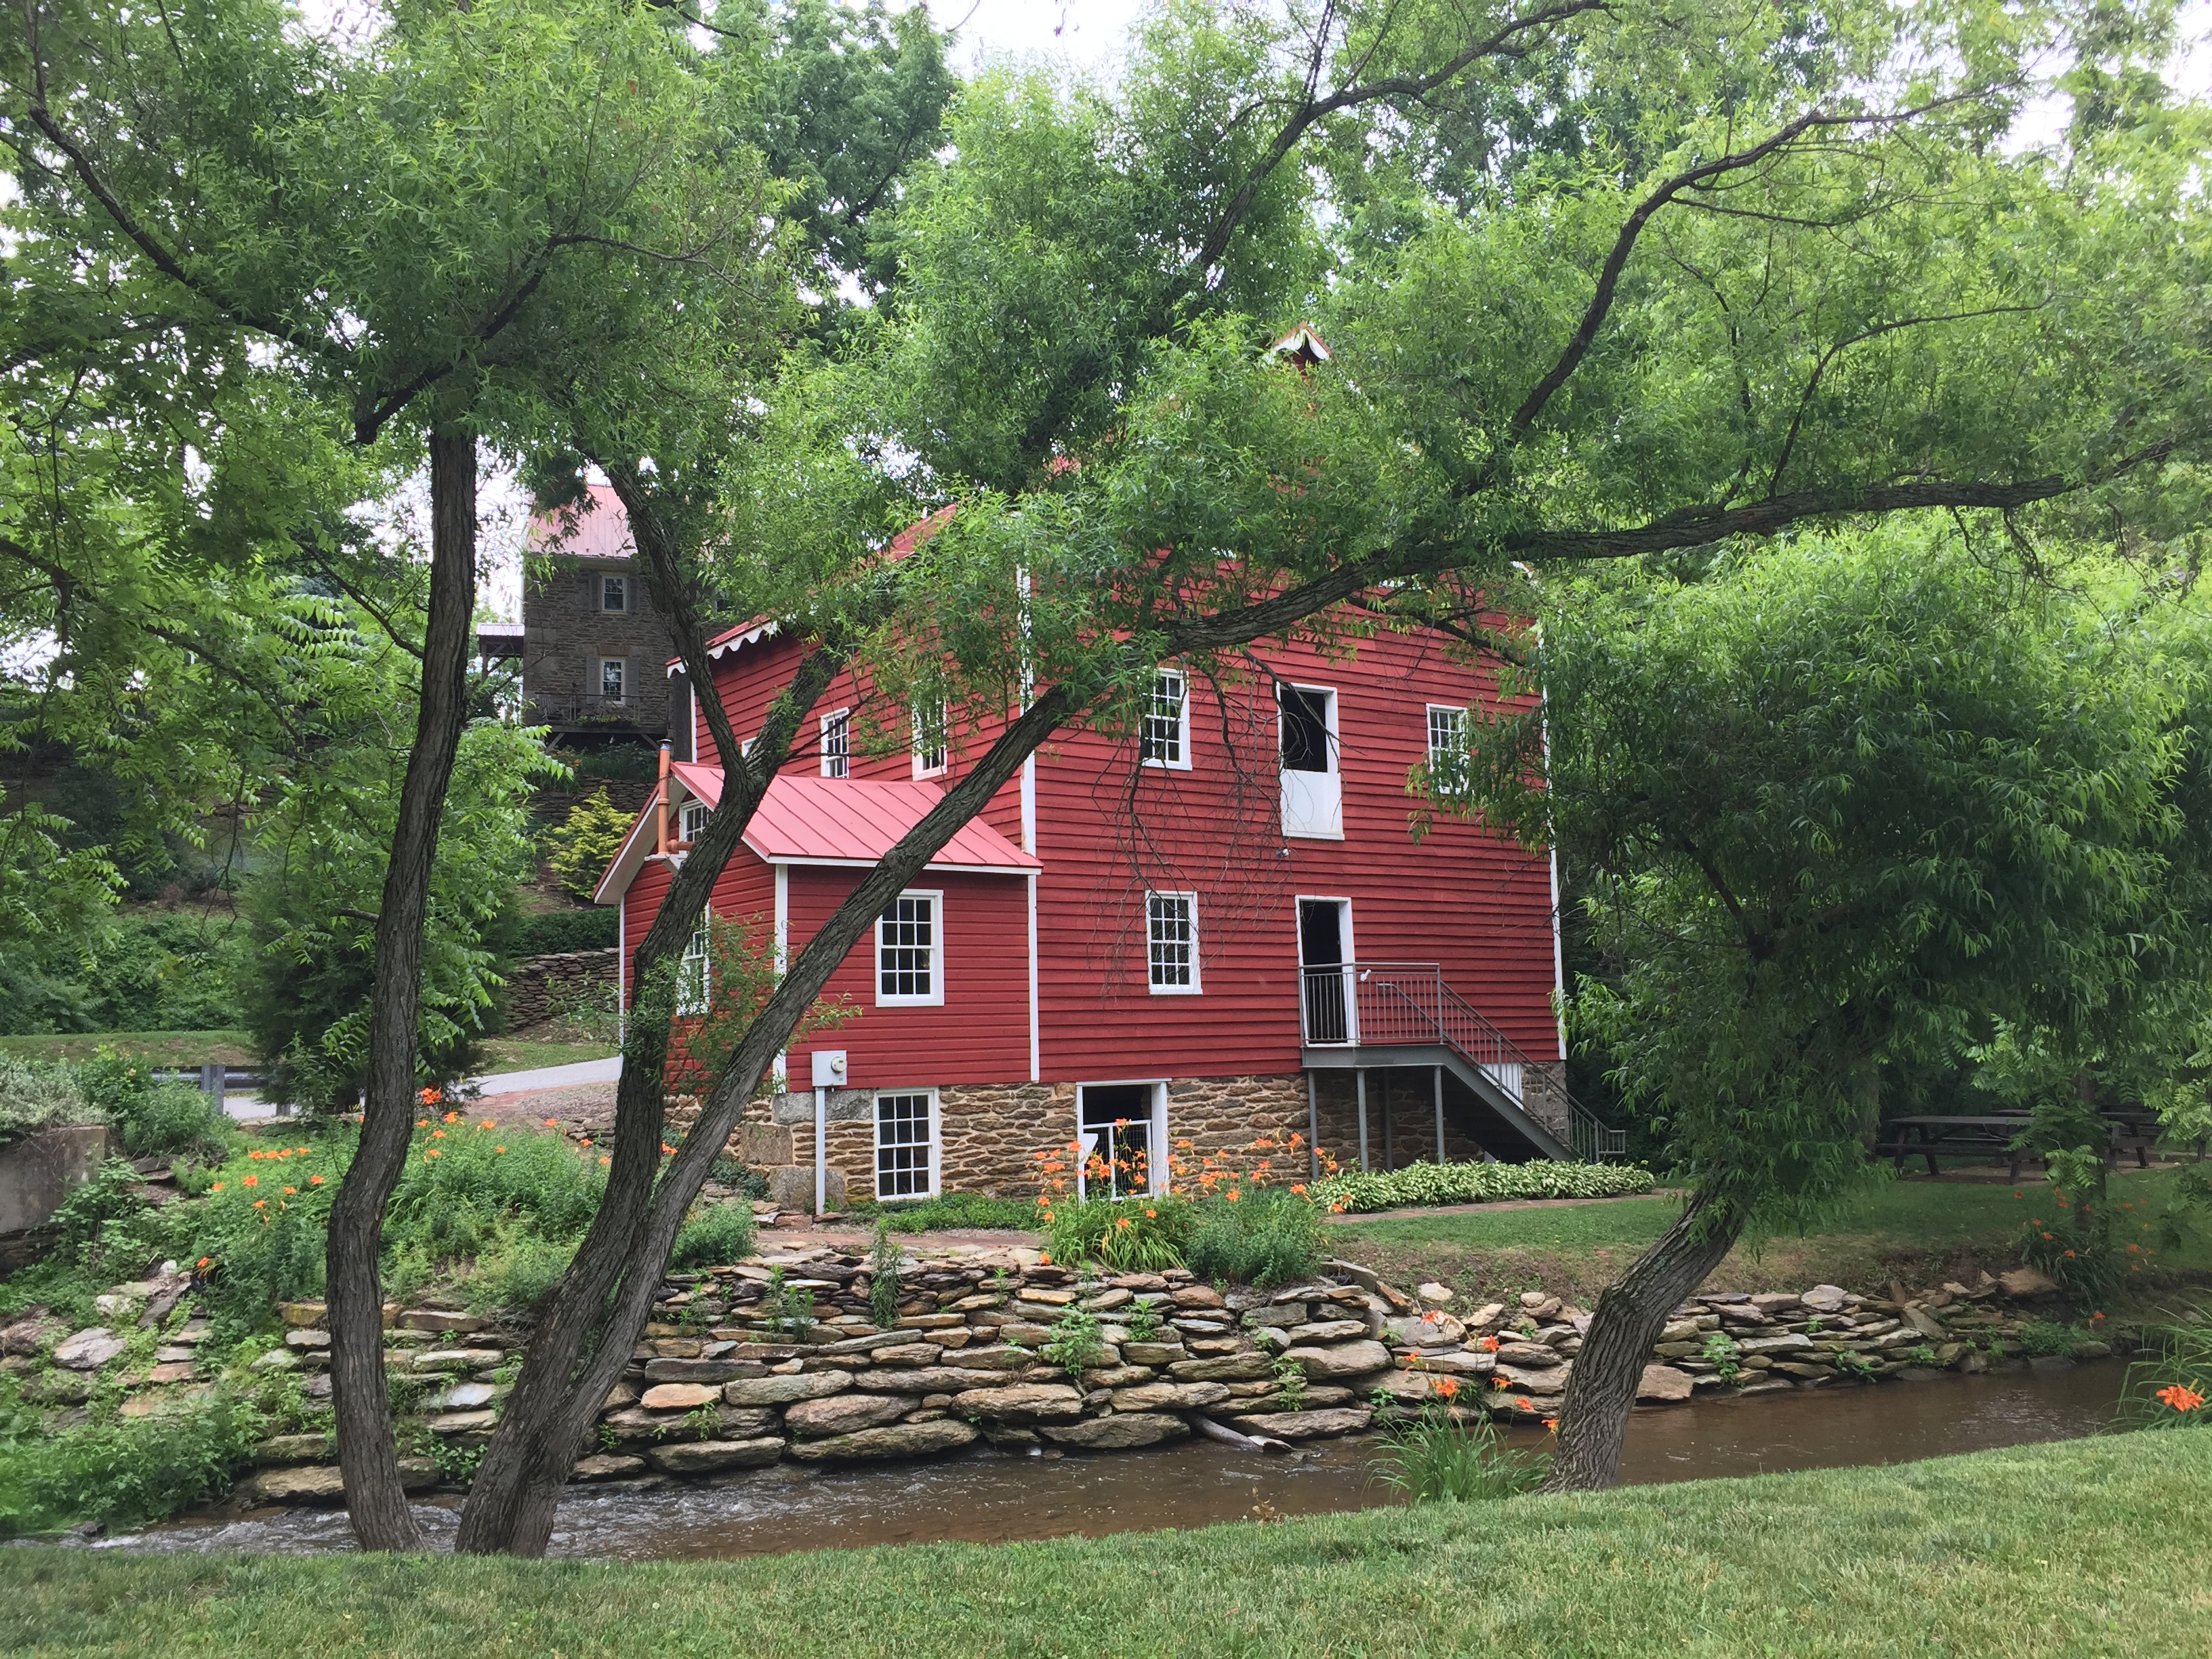 Sip on cider as you explore the historic Wallace-Cross Mill.